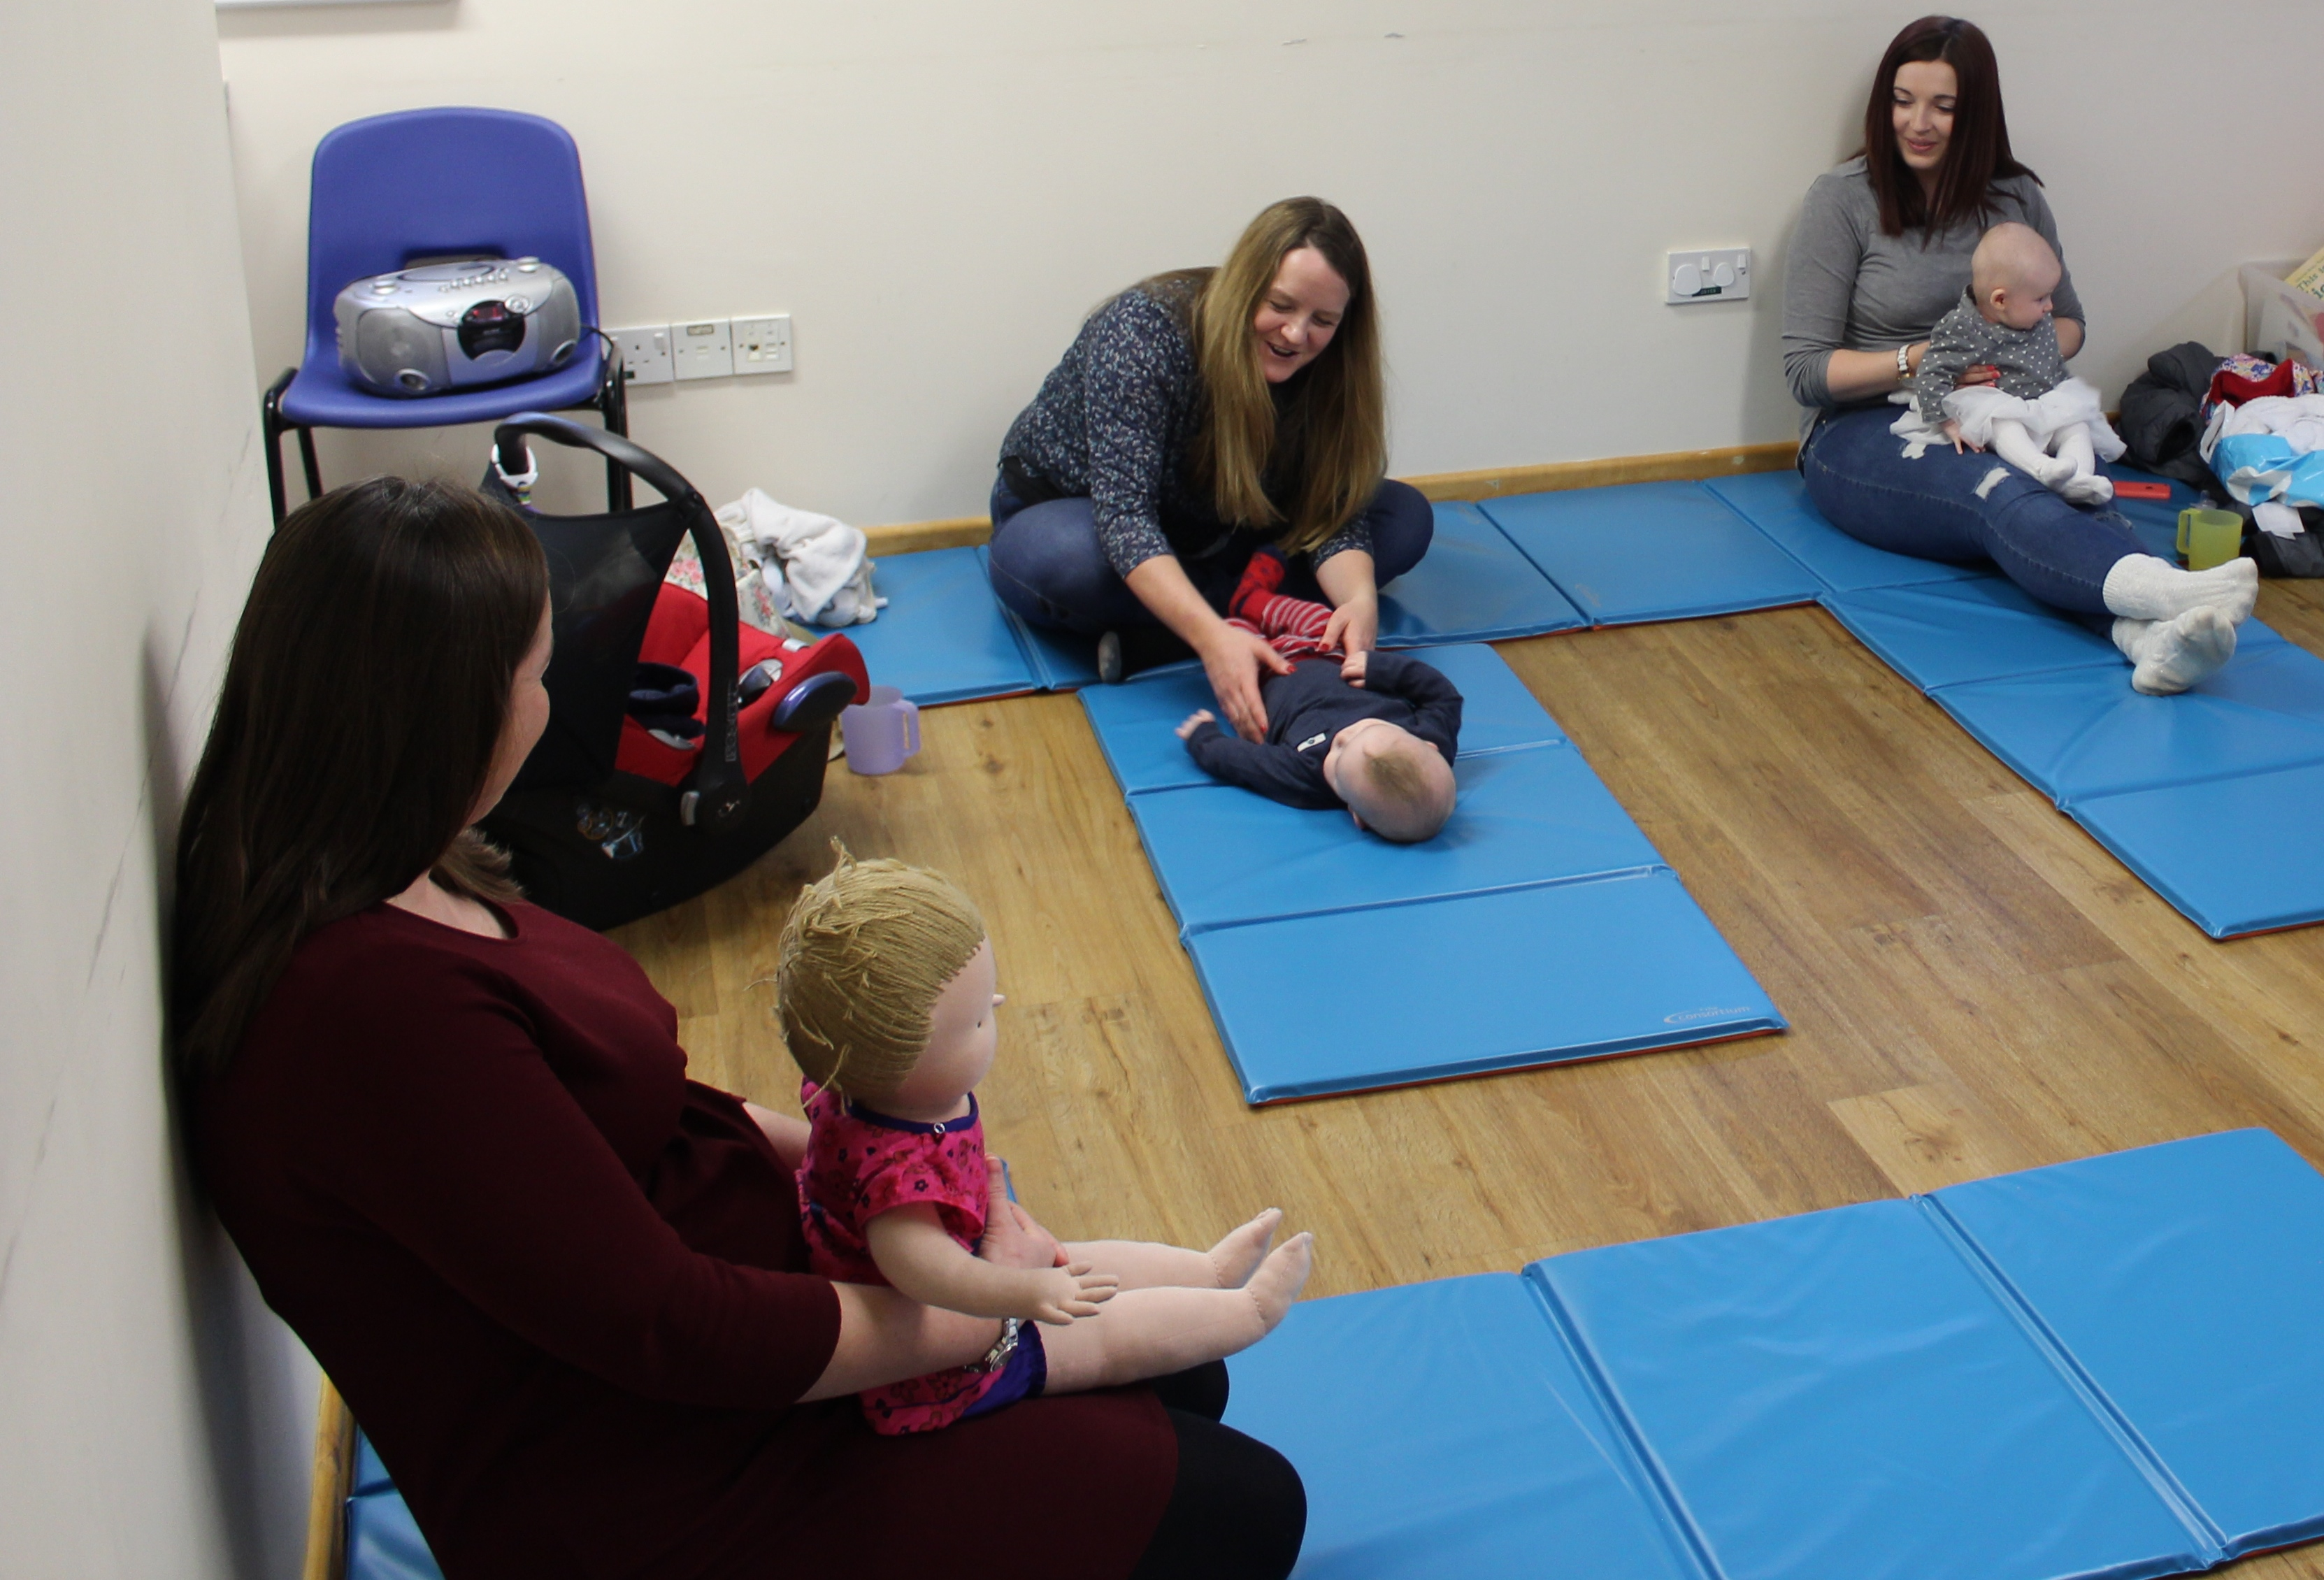 Dorset HealthCare helping to strengthen the bond between mother and baby